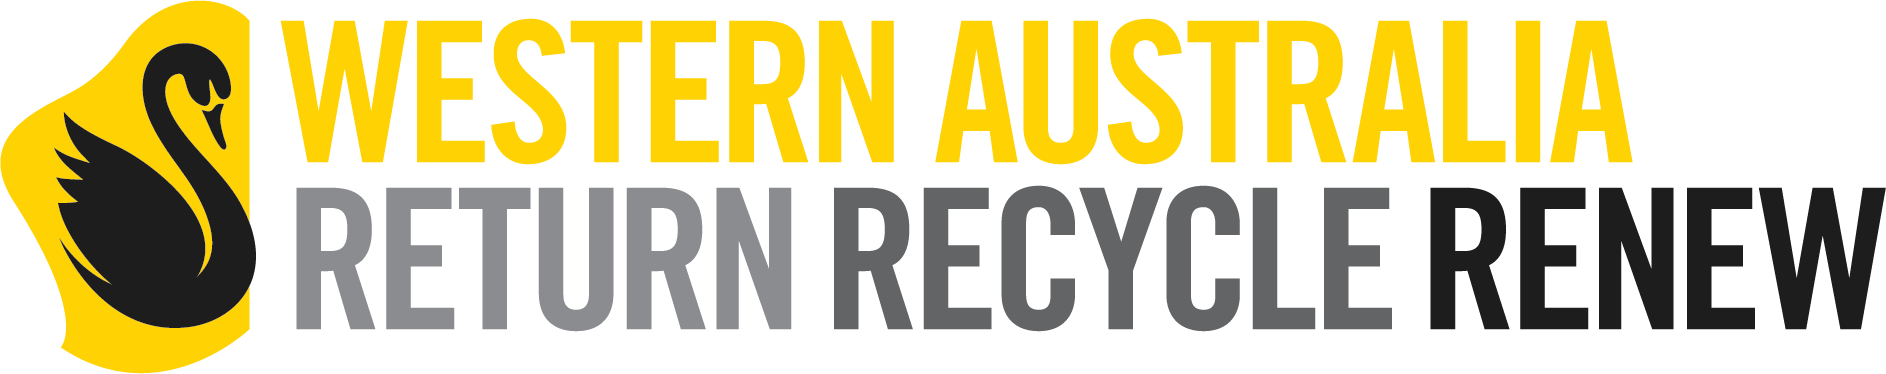 WA Return Recycle Renew Logo